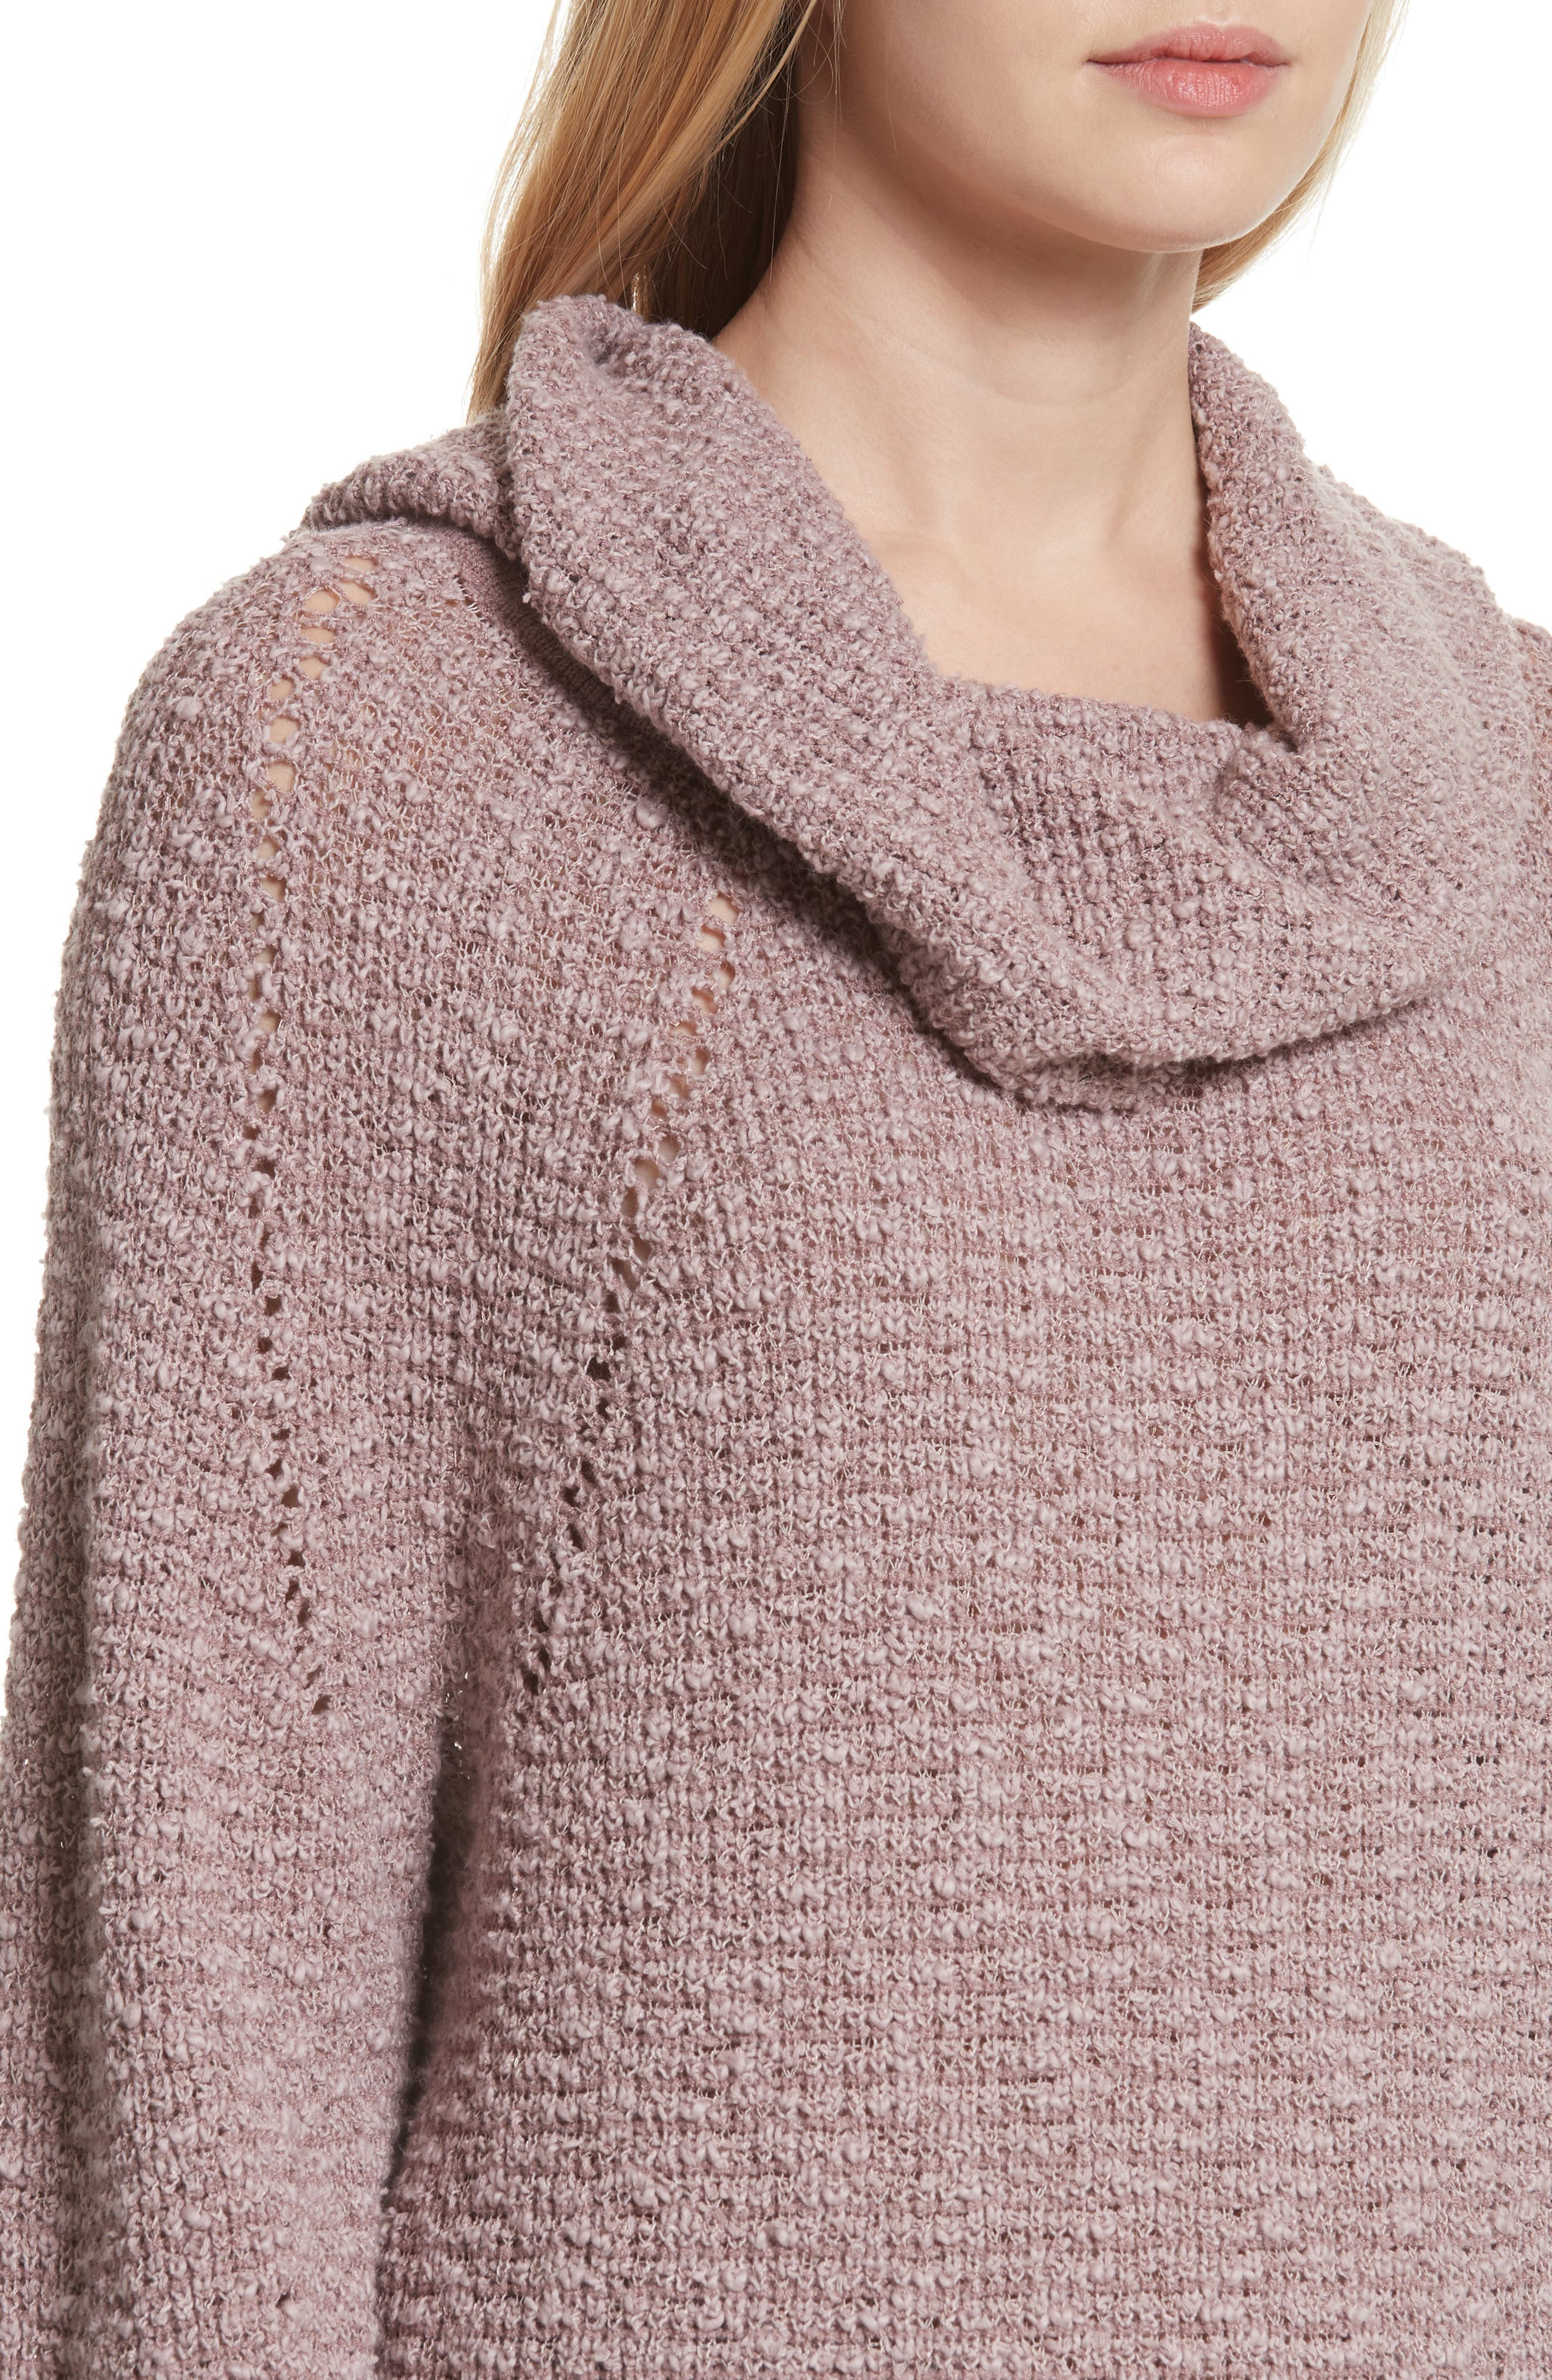 By Your Side Sweater,                             Alternate thumbnail 4, color,                             Mauve